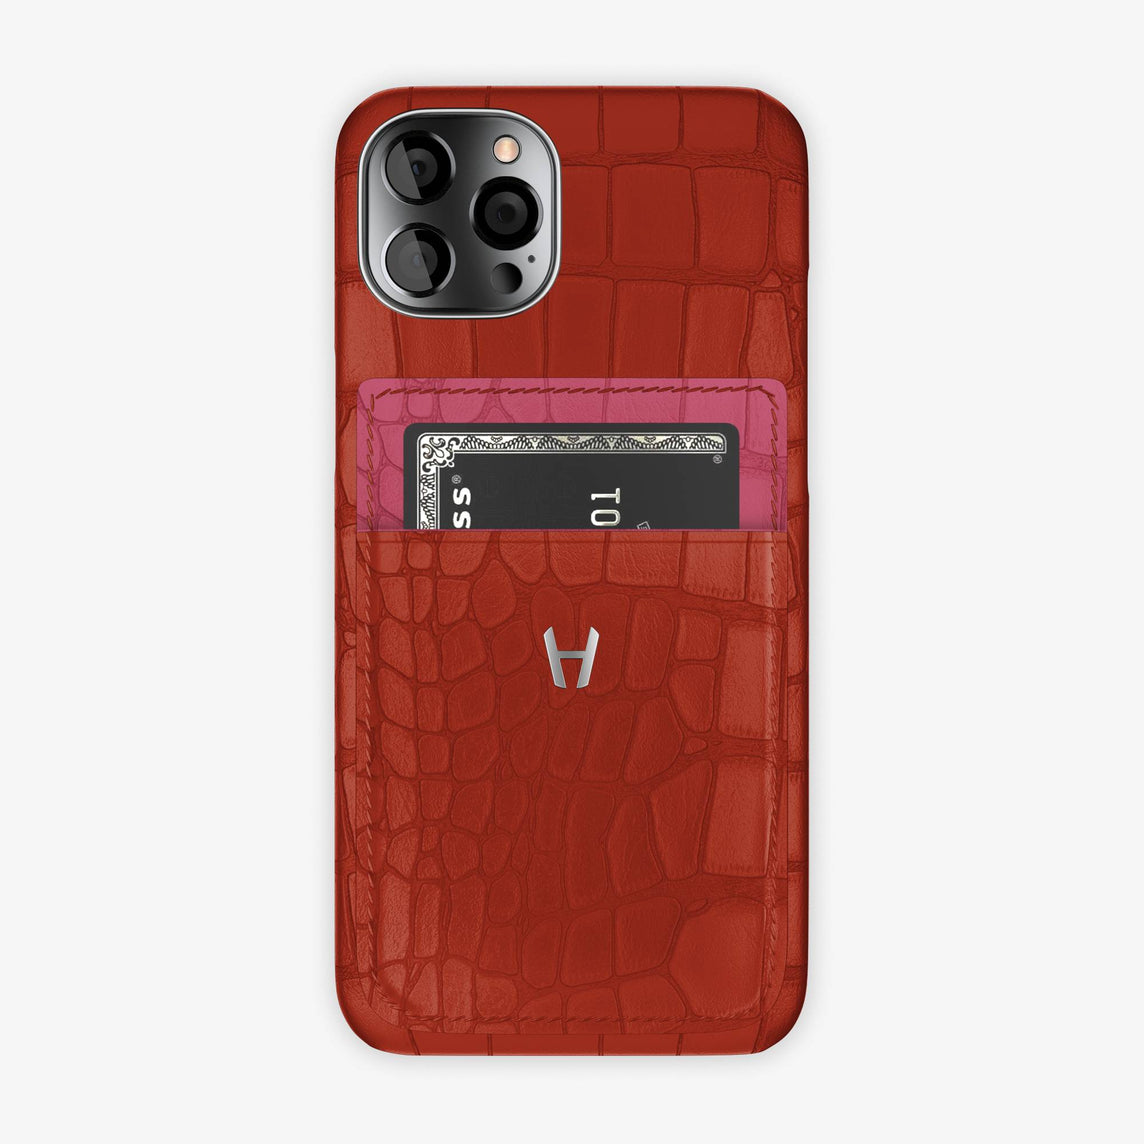 Alligator Pocket Case iPhone 12 & 12 Pro | Red/Pink Girly - Stainless Steel